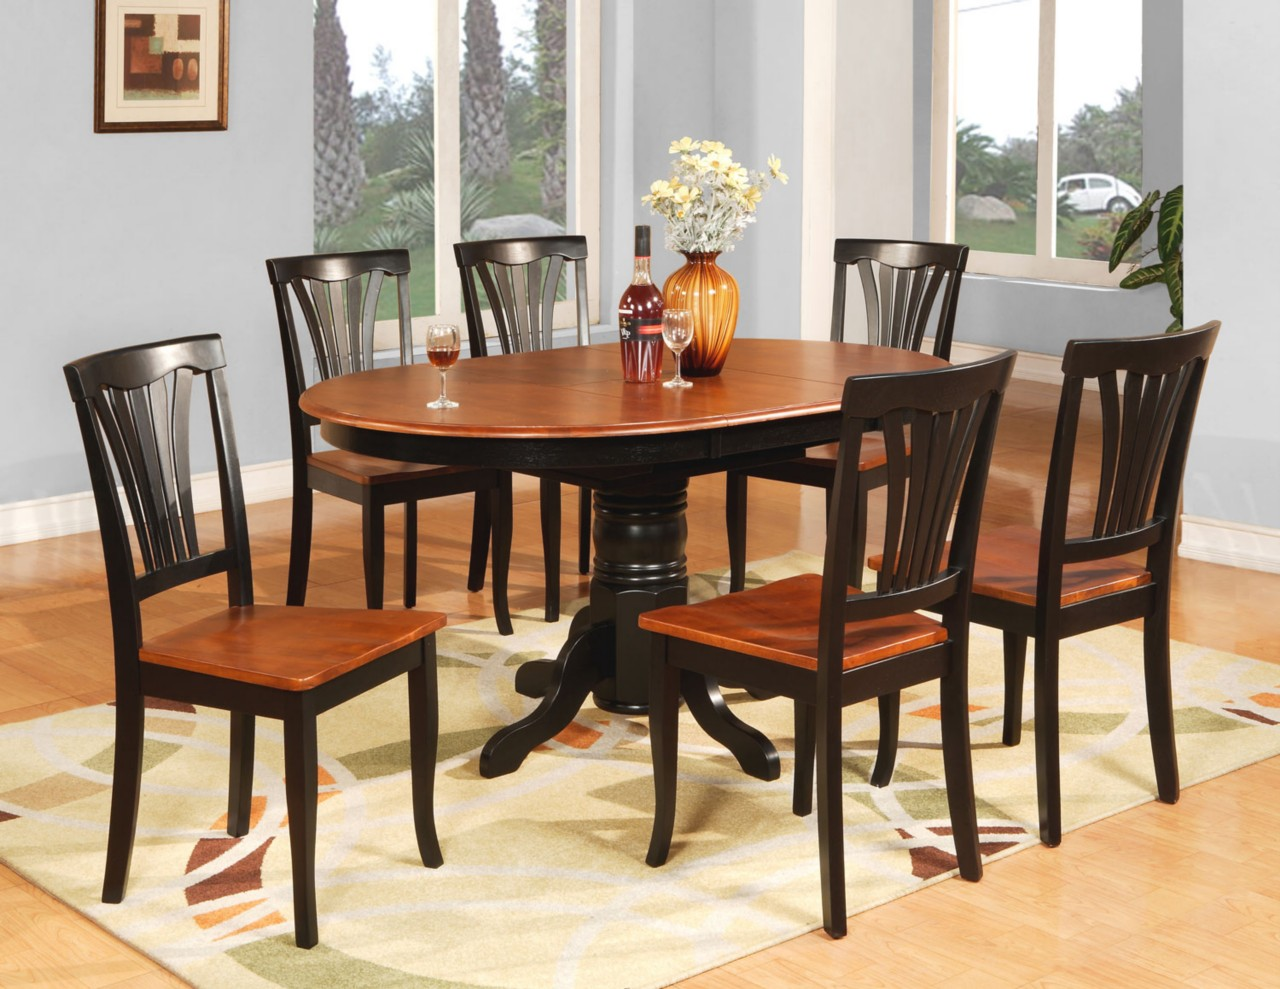 7 pc oval dinette kitchen dining room table 6 chairs ebay for Kitchen and dining room chairs